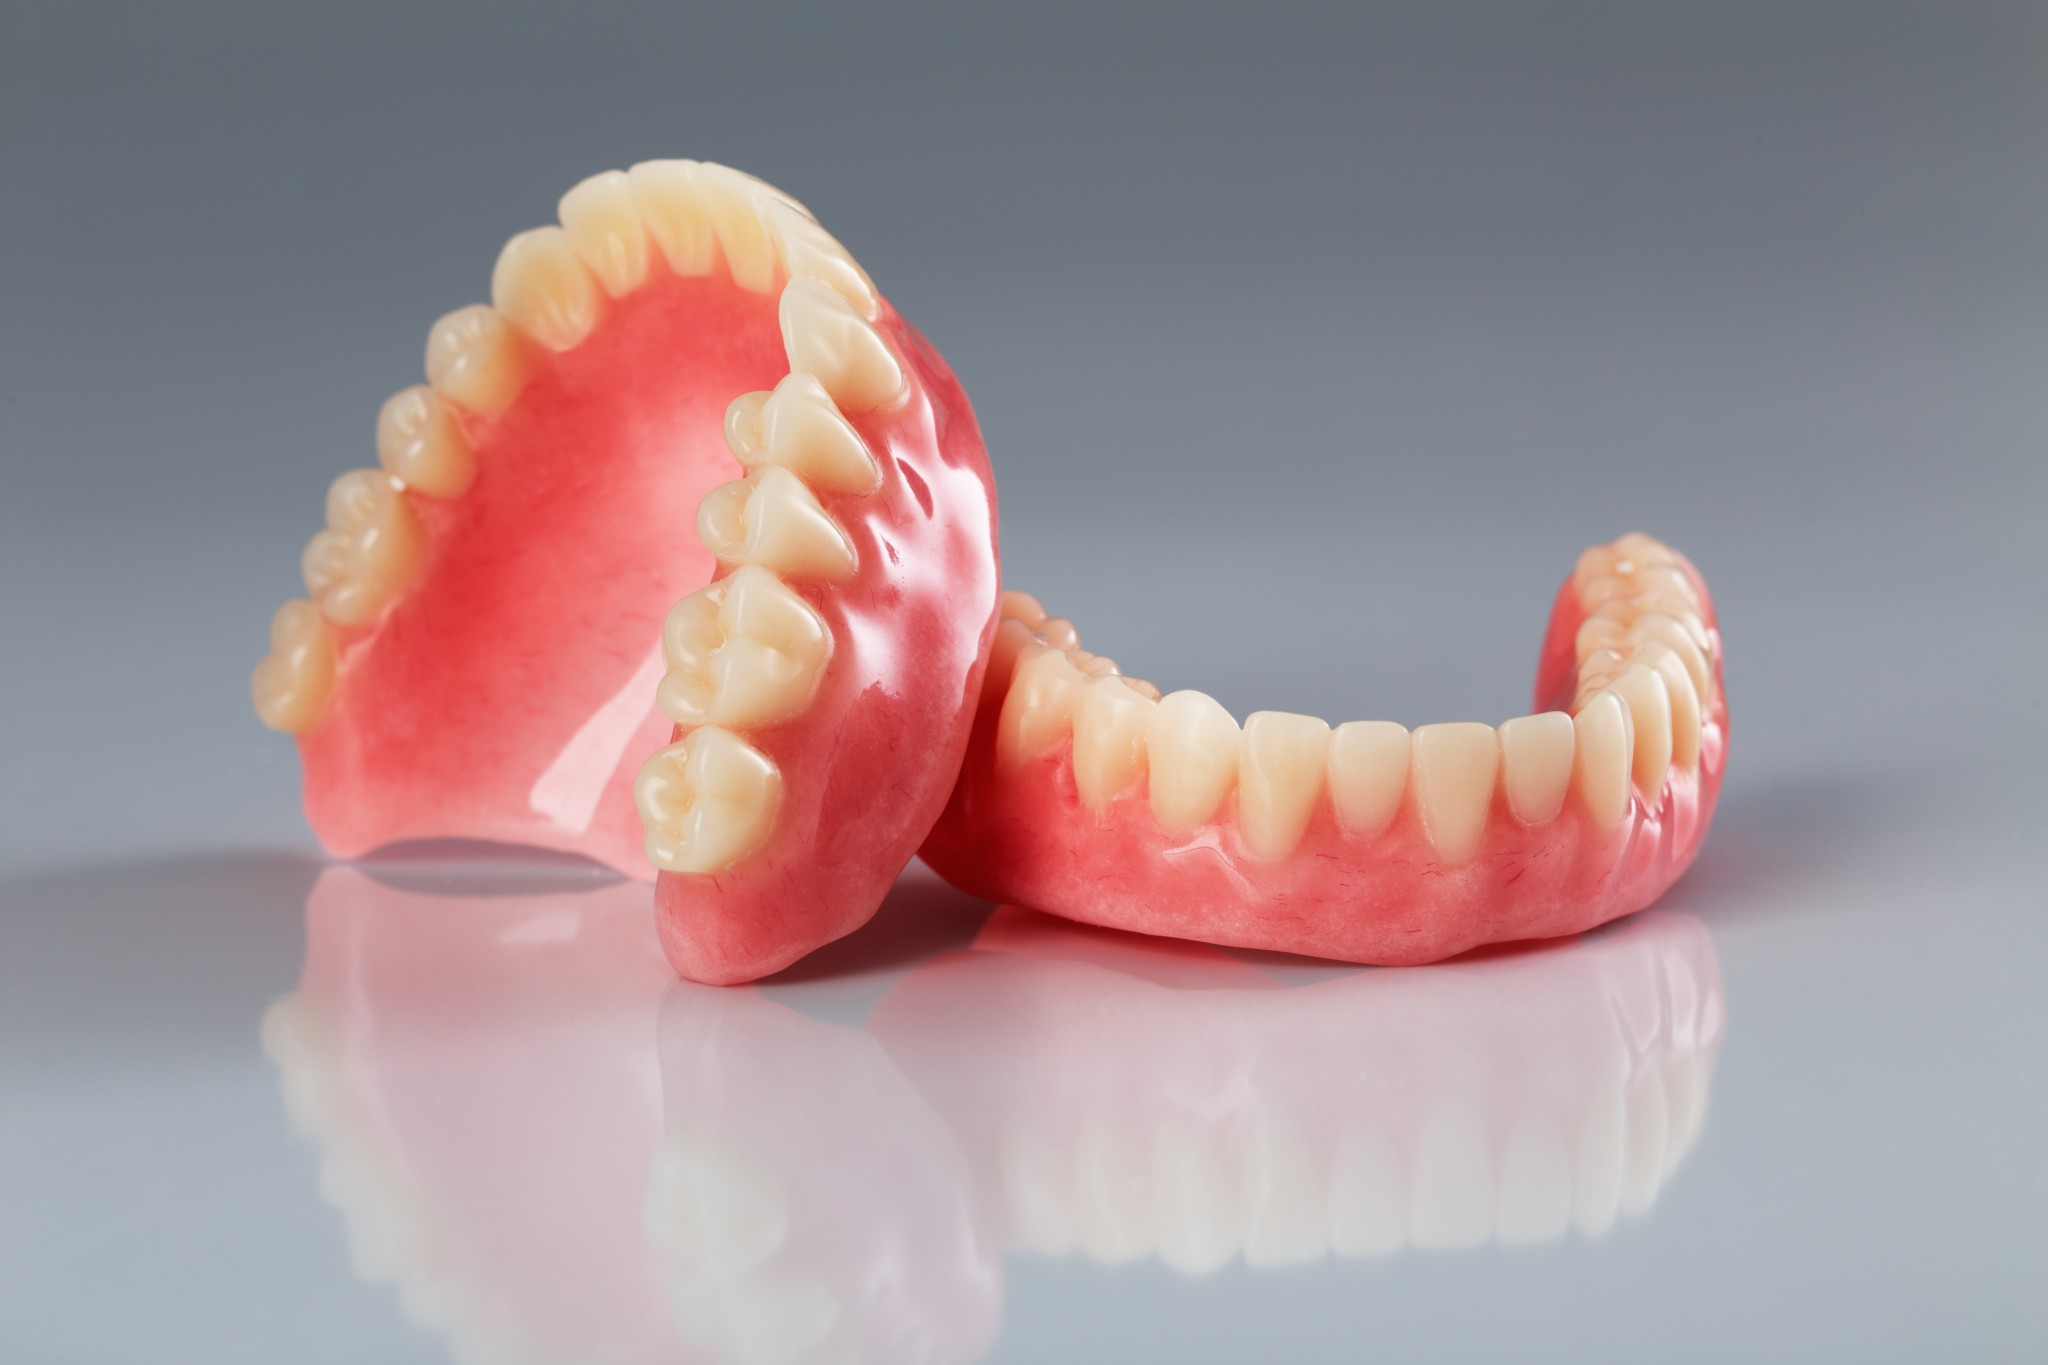 Complete Dentures ... What's Your Strategy?